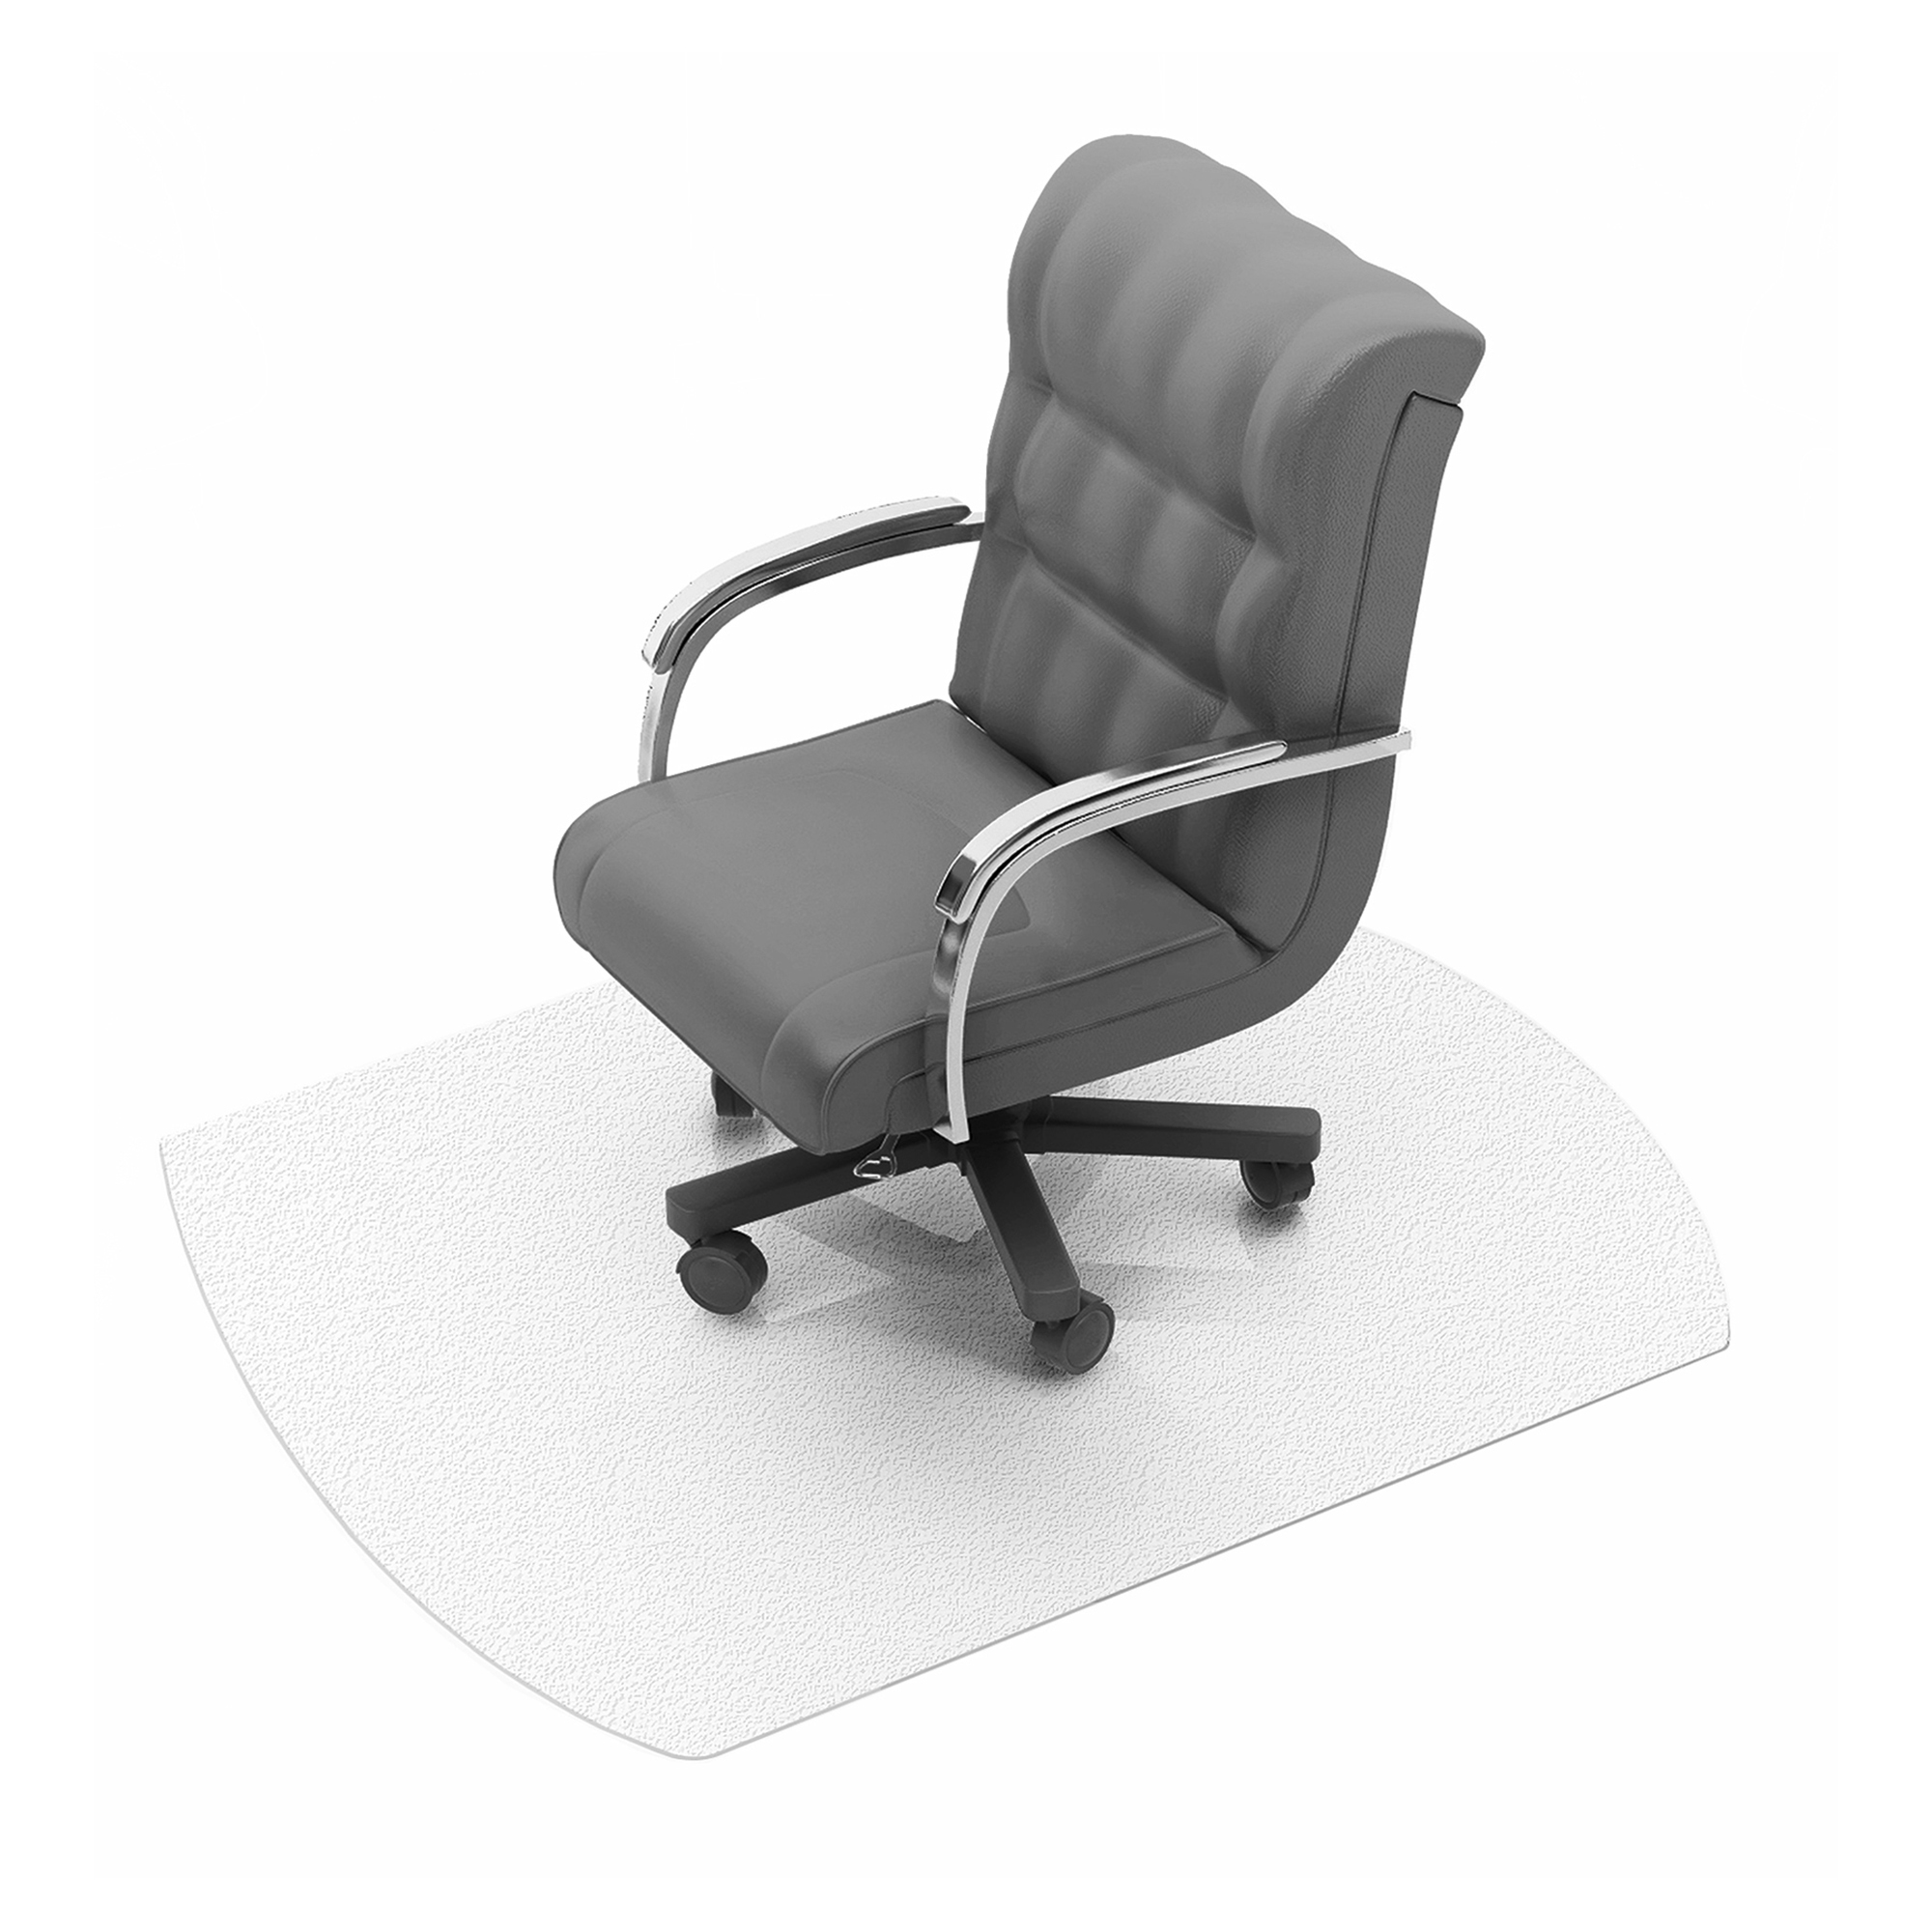 For Hard Floors Cleartex Ultimat Chair Mat Polycarbonate Contoured For Carpet Protection 990x1250mm Clear Ref FC119923SR